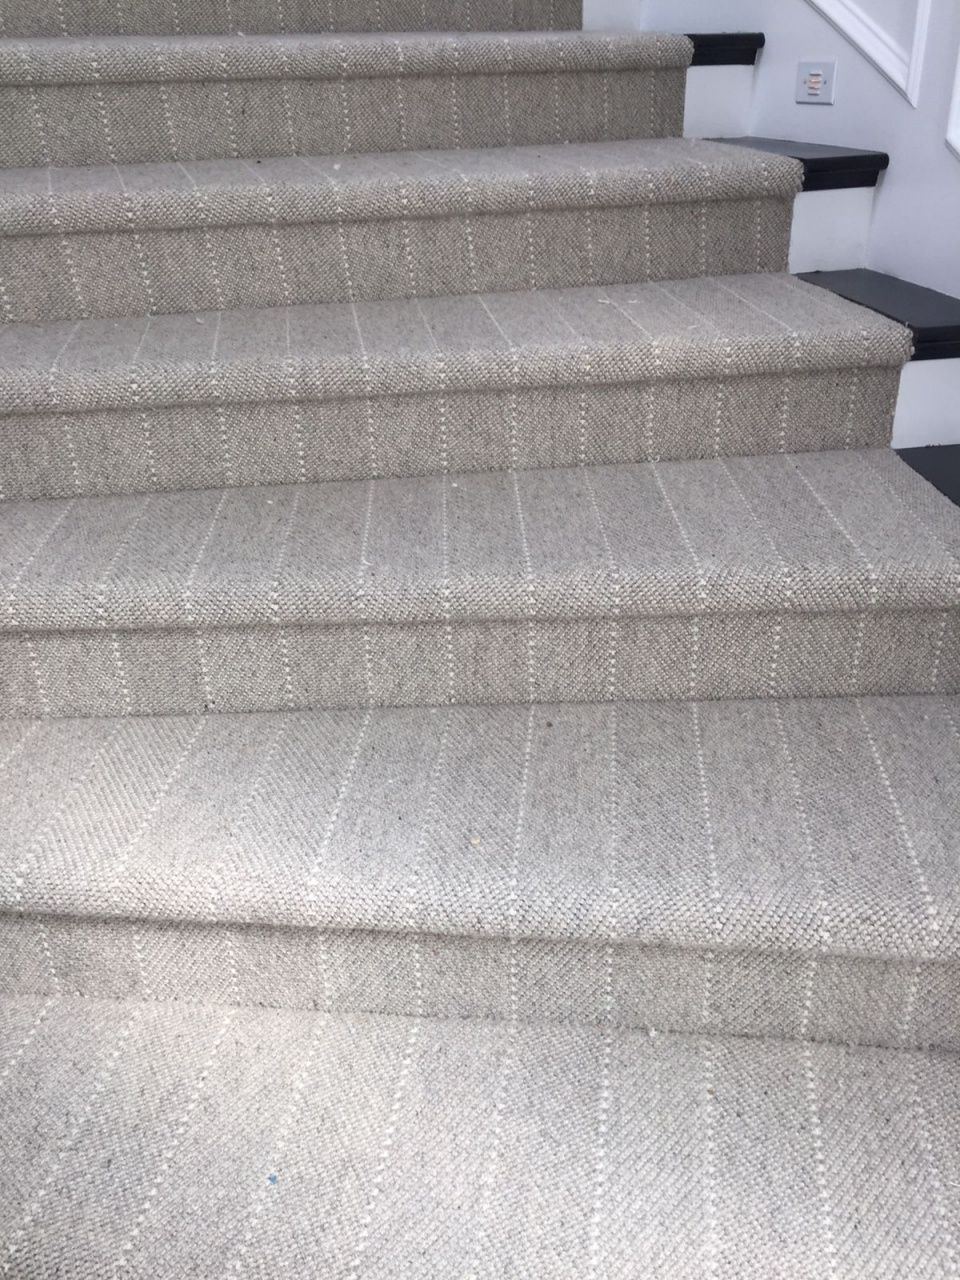 Best Silver Glide Stair Lift Parts In 2020 Carpet Stairs 640 x 480